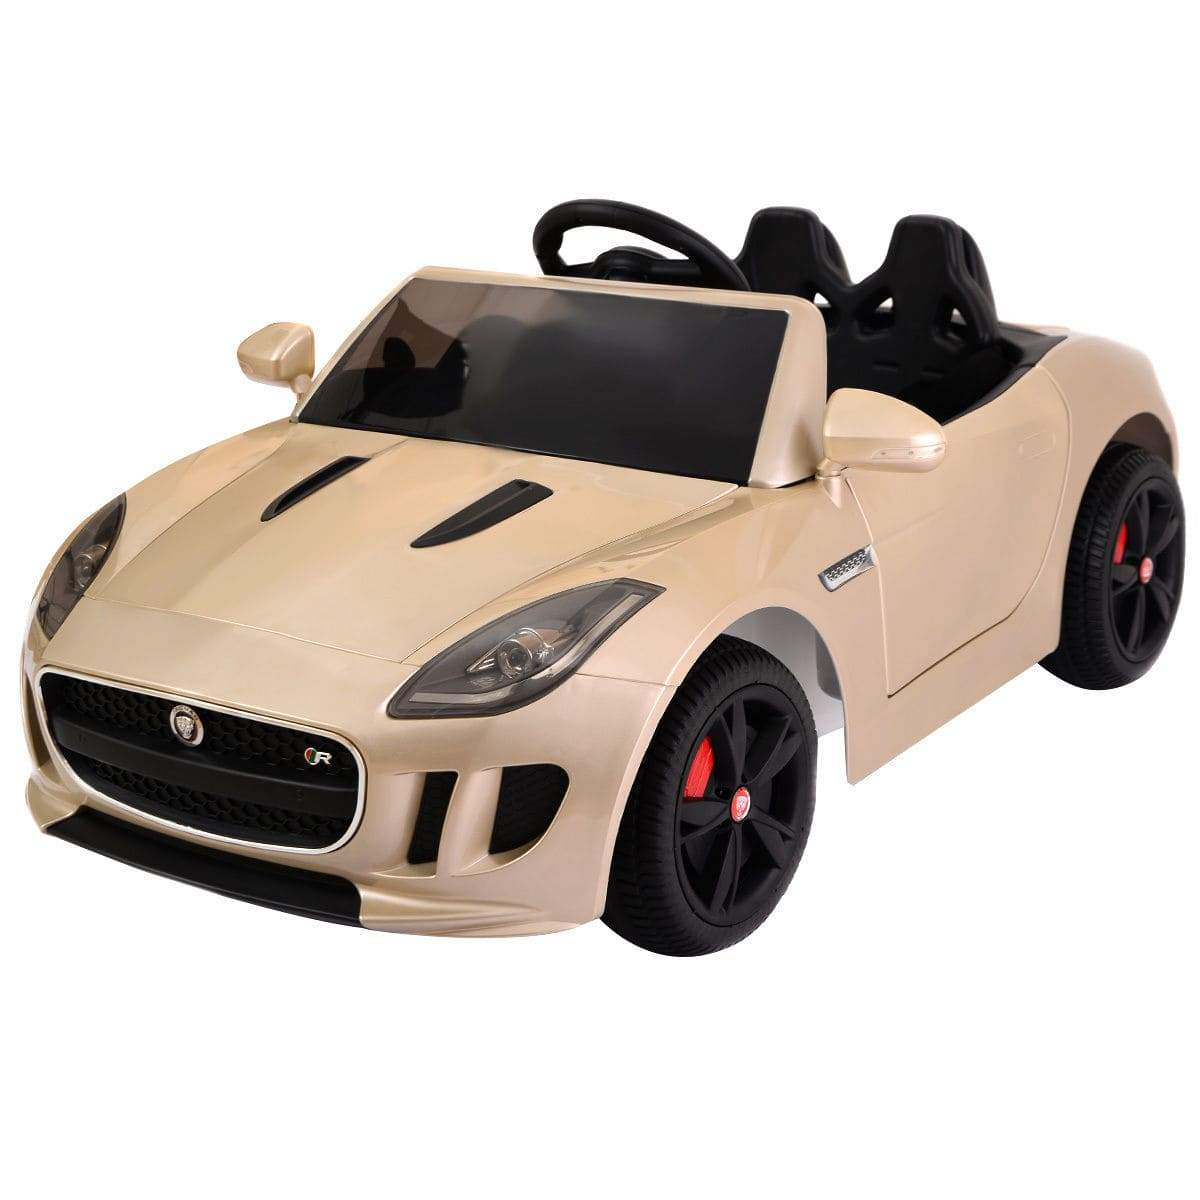 12V Jaguar F-TYPE Kids Ride on Car with MP3 + RC Cars & SUVs Costway